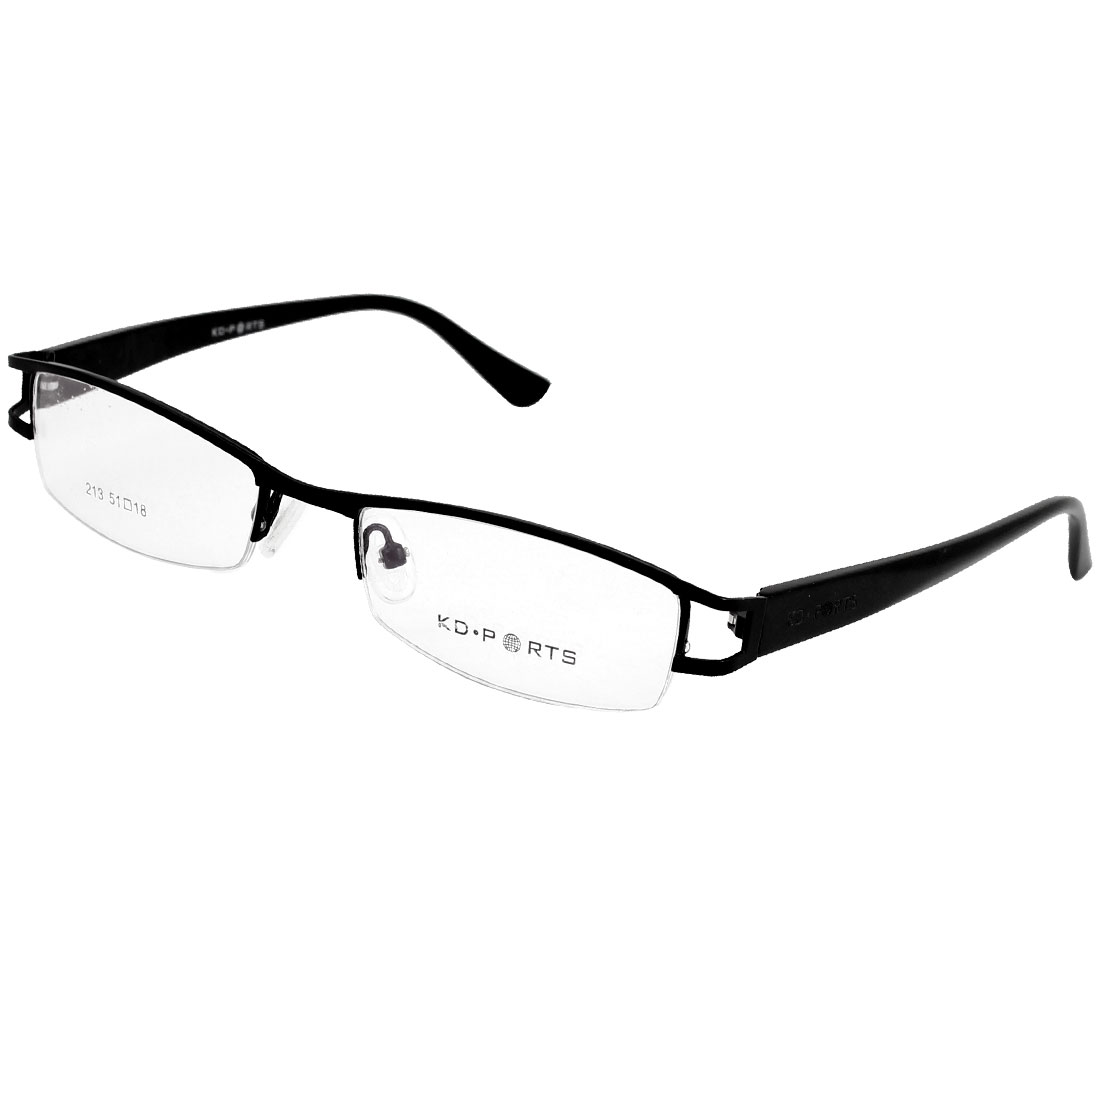 Black Plastic Arms Multi Coated Clear Lens Rubber Nose Pads Plano Glasses